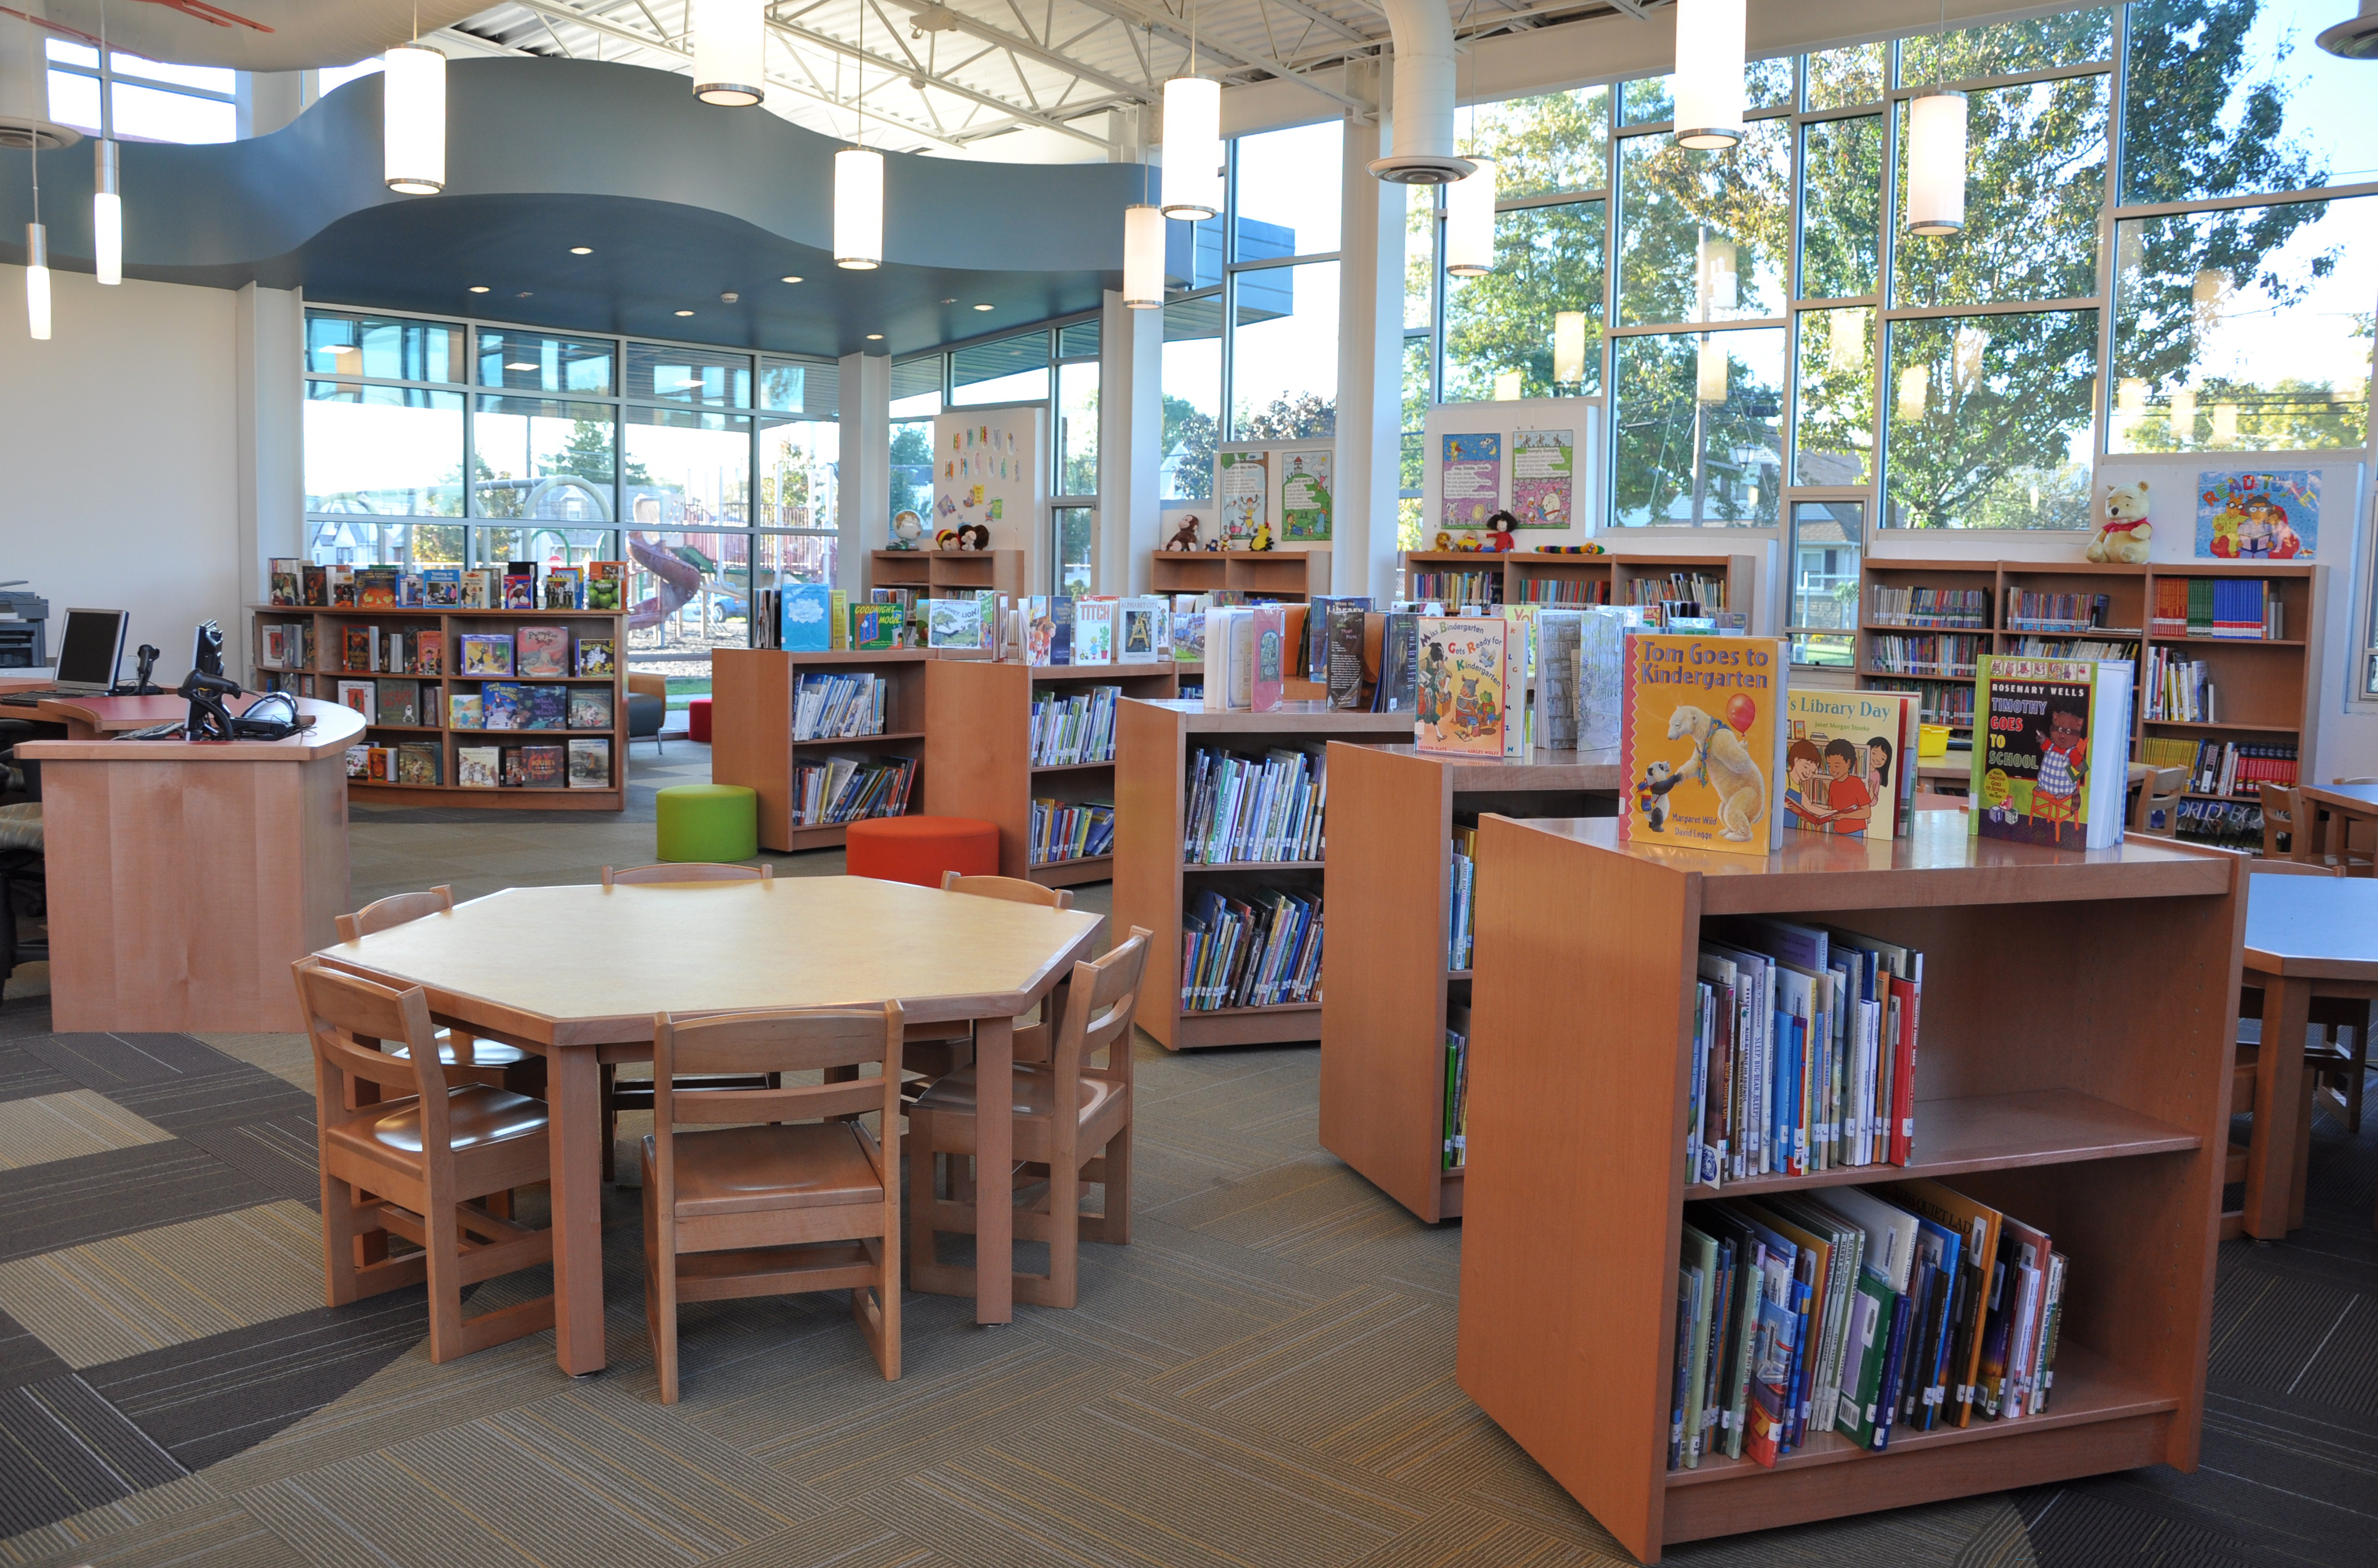 Library Furniture, Shelving & Bookcases | School Furnishings